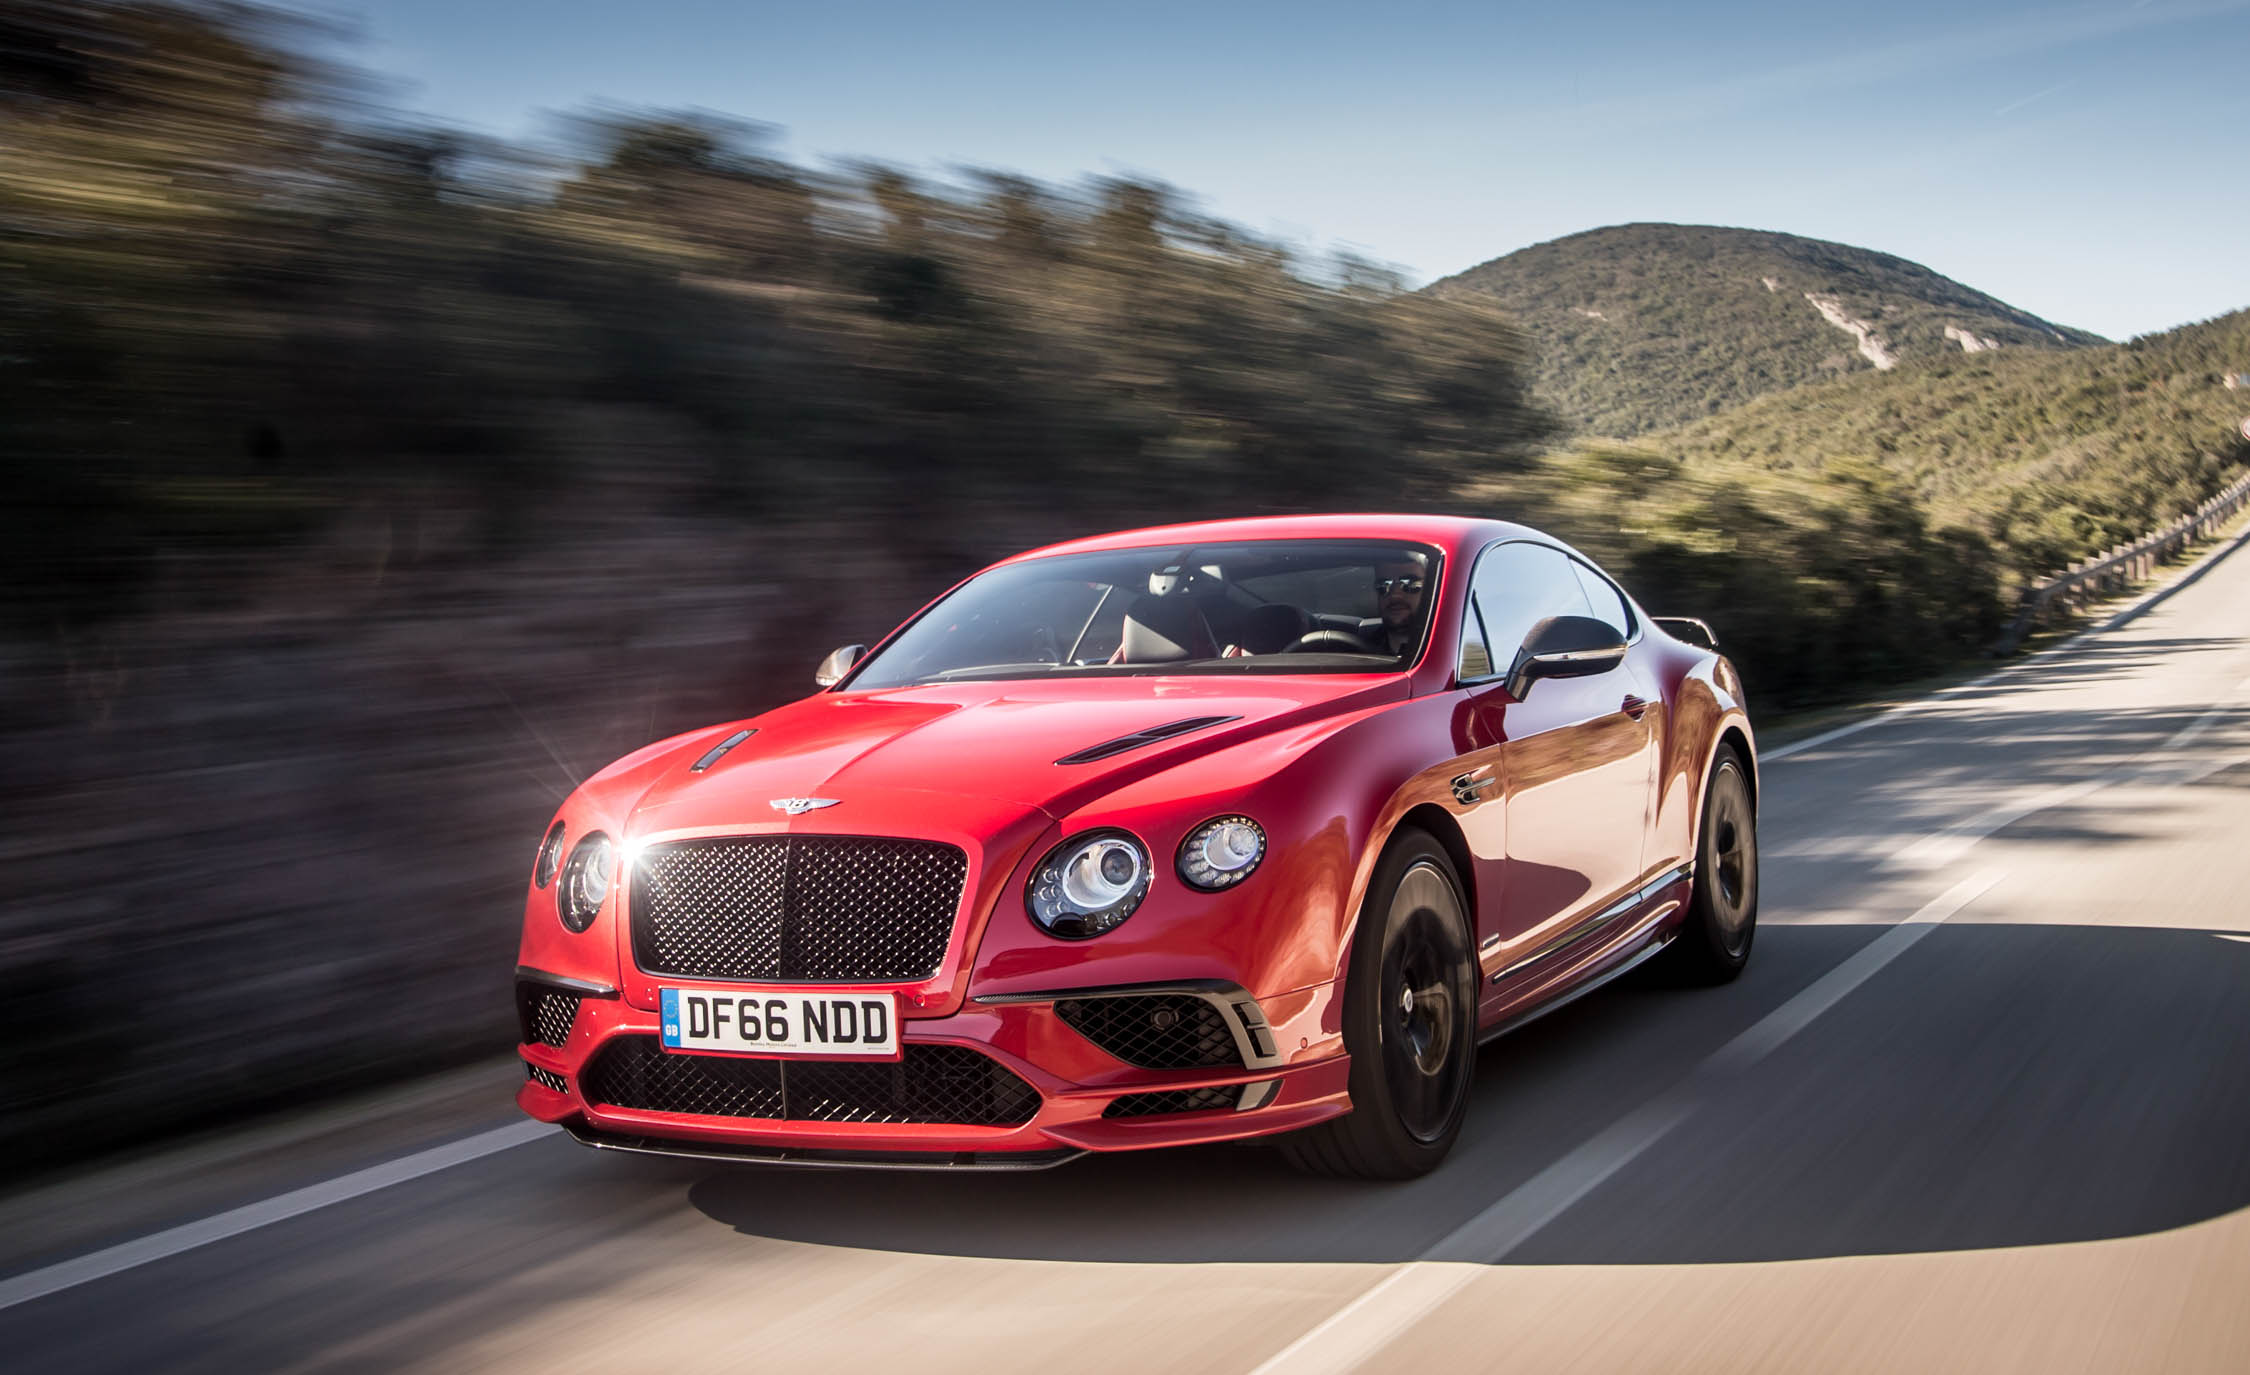 2018 Bentley Continental Supersports Color Red Metallic (View 24 of 66)